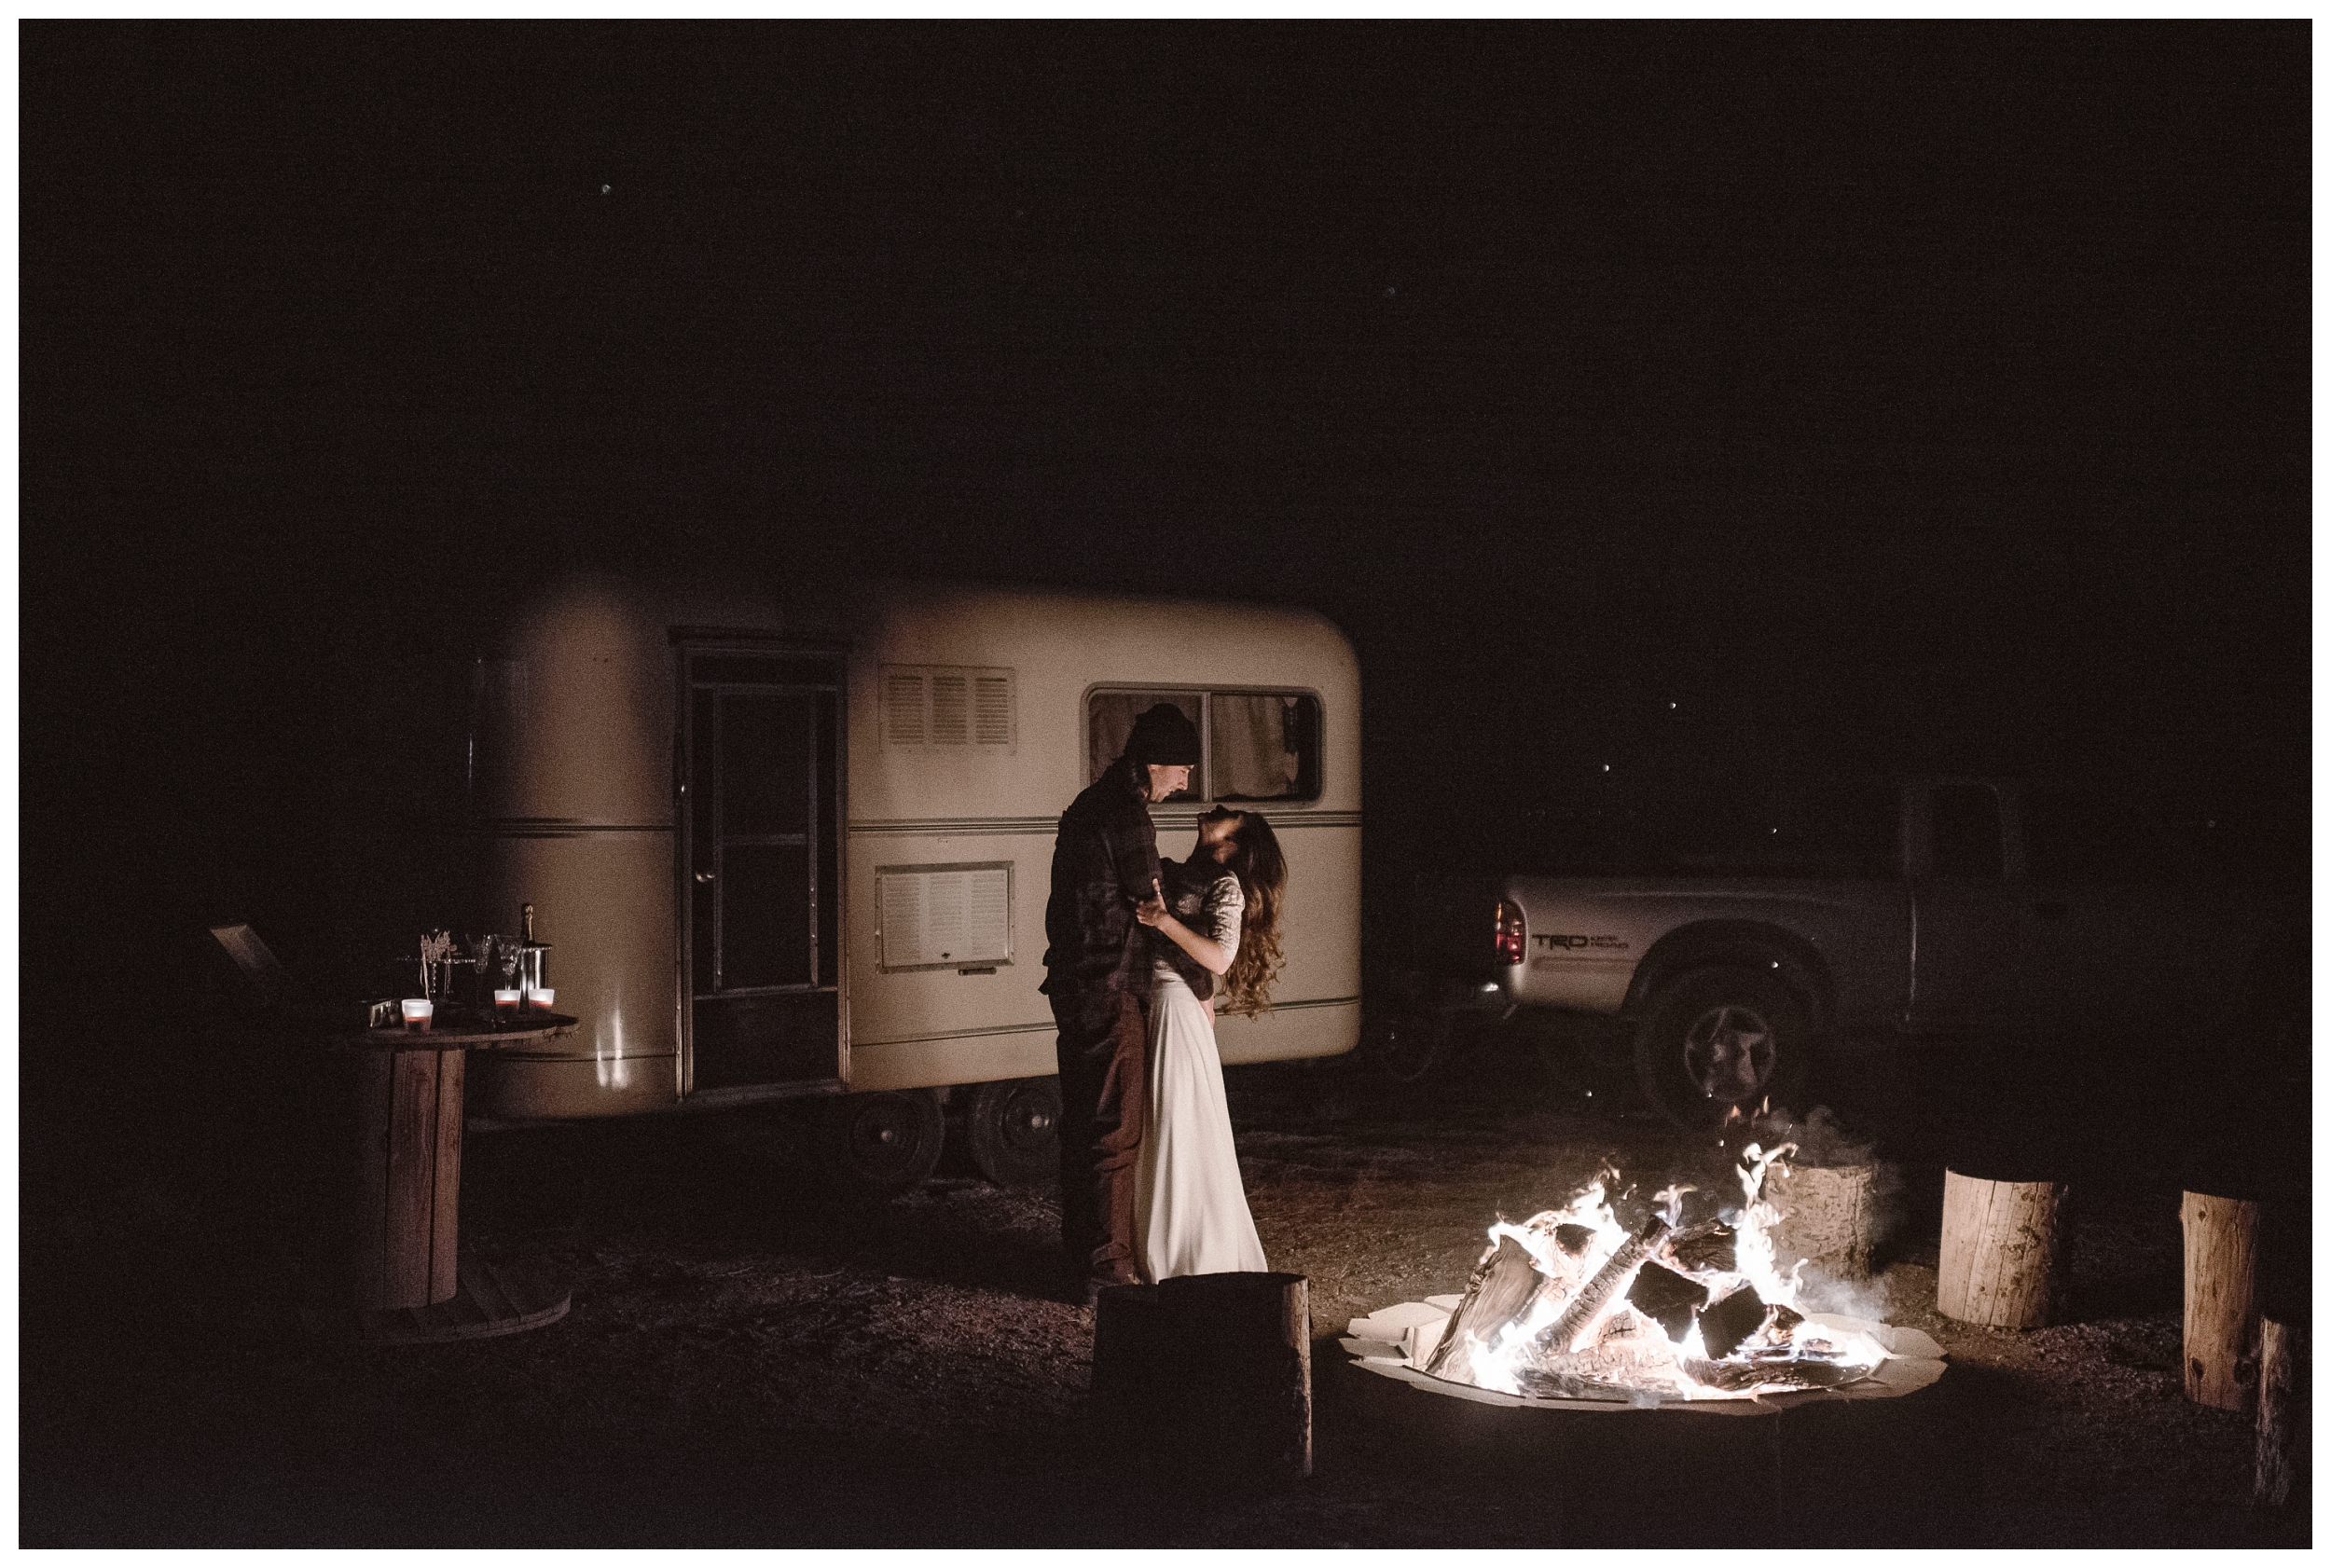 Dancing by firelight after their self solemnizing ceremony at Great Sand Dunes National Park in Southern Colorado. Photo by Maddie Mae Photo, Adventures Instead.